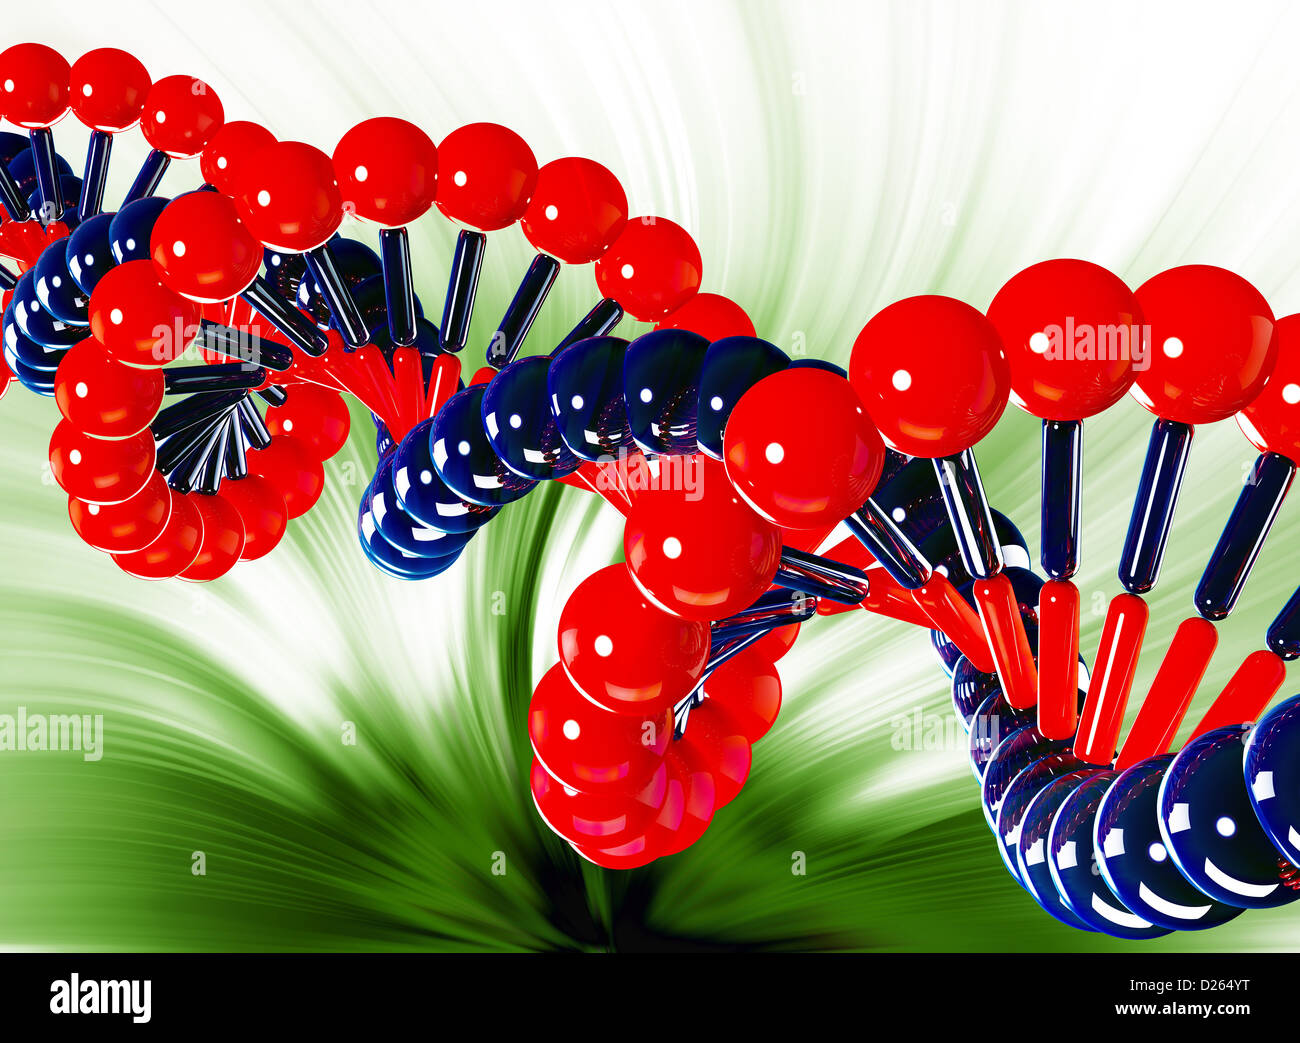 DNA Abstract - Stock Image